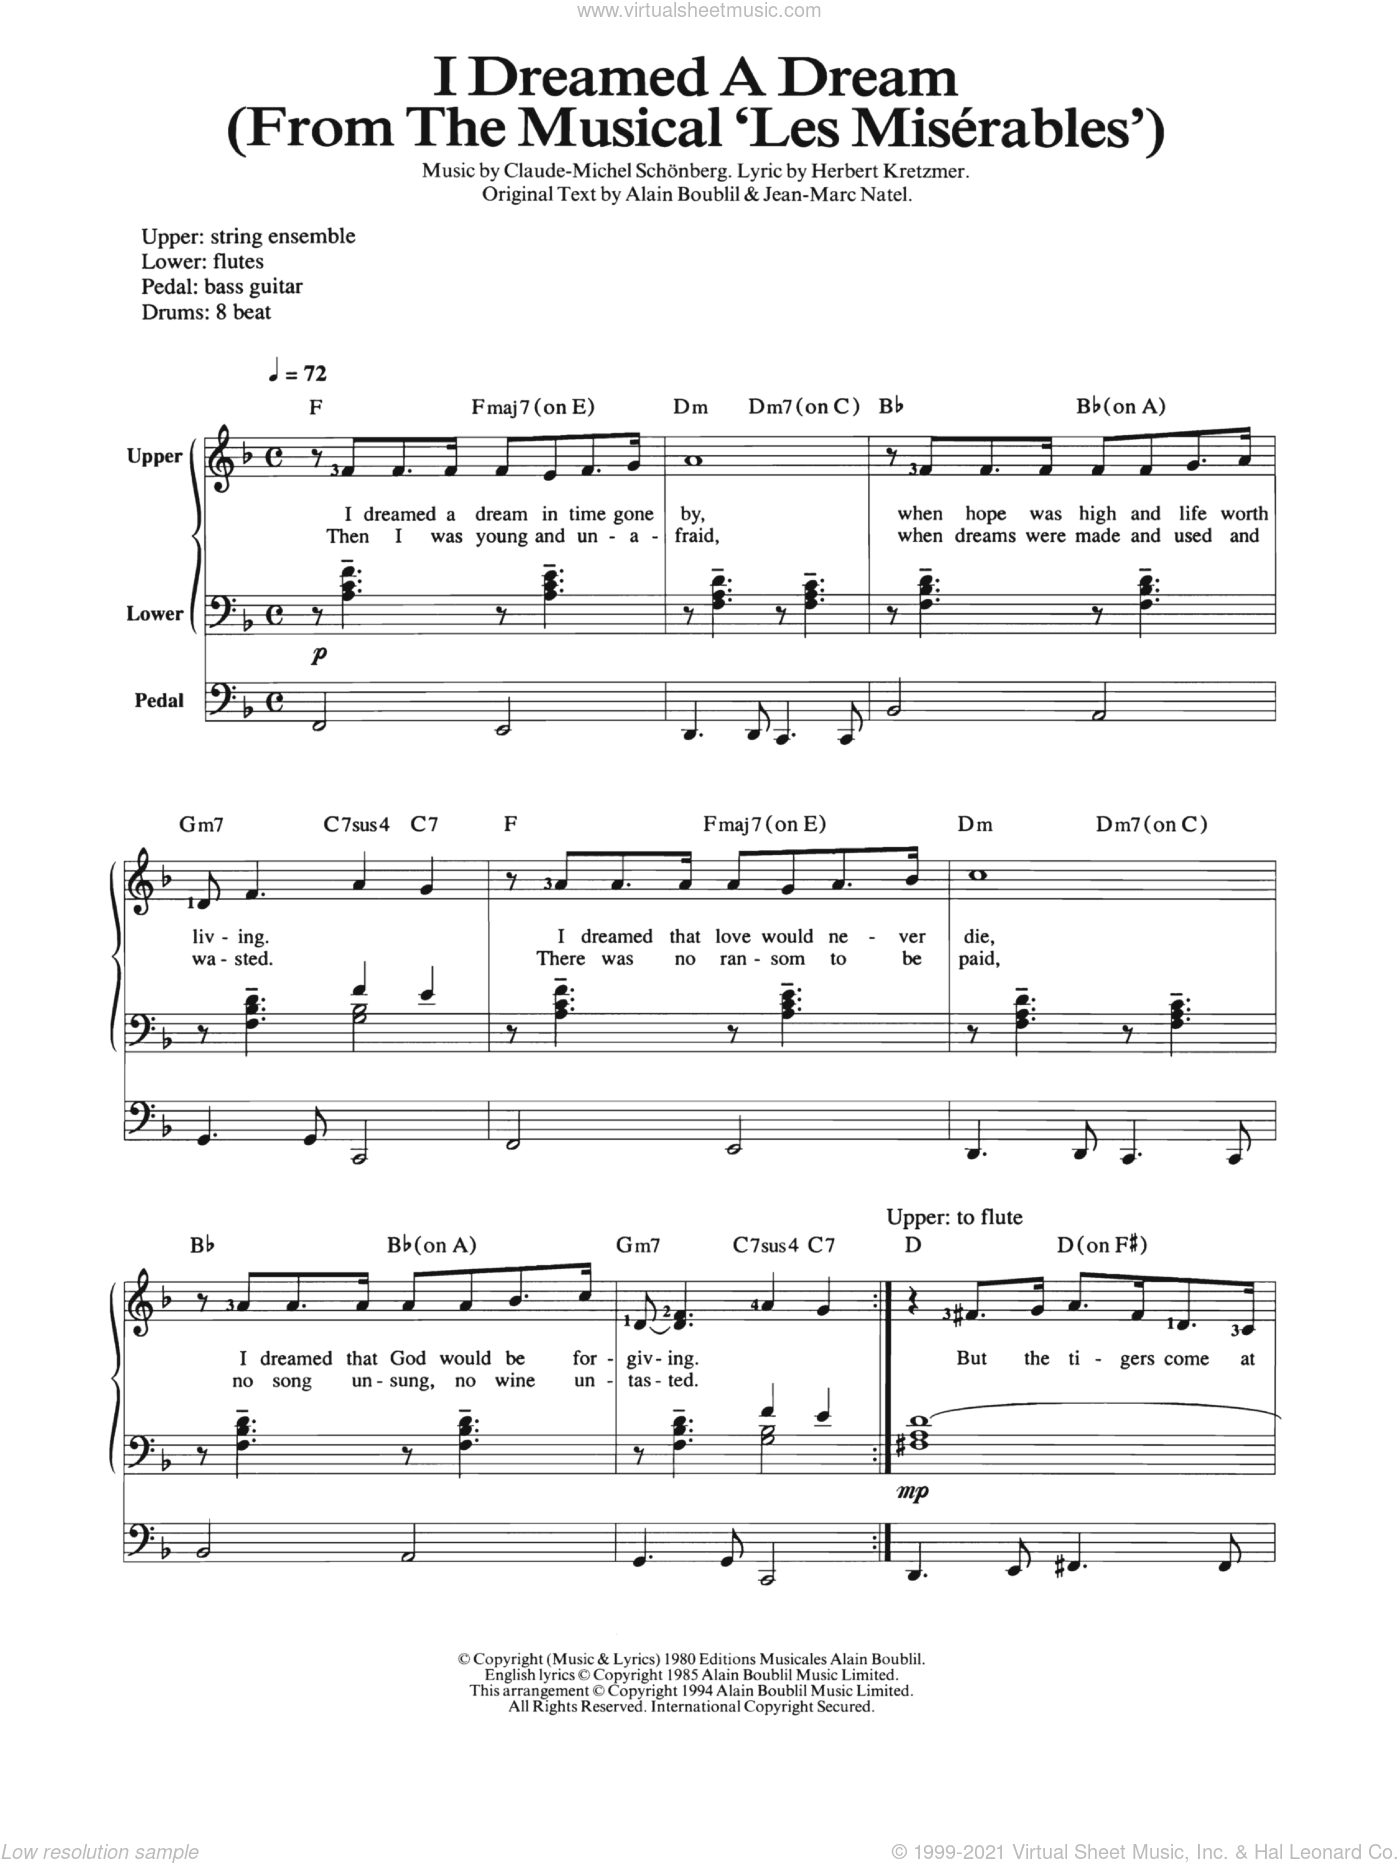 I Dreamed A Dream sheet music for organ by Jean-Marc Natel